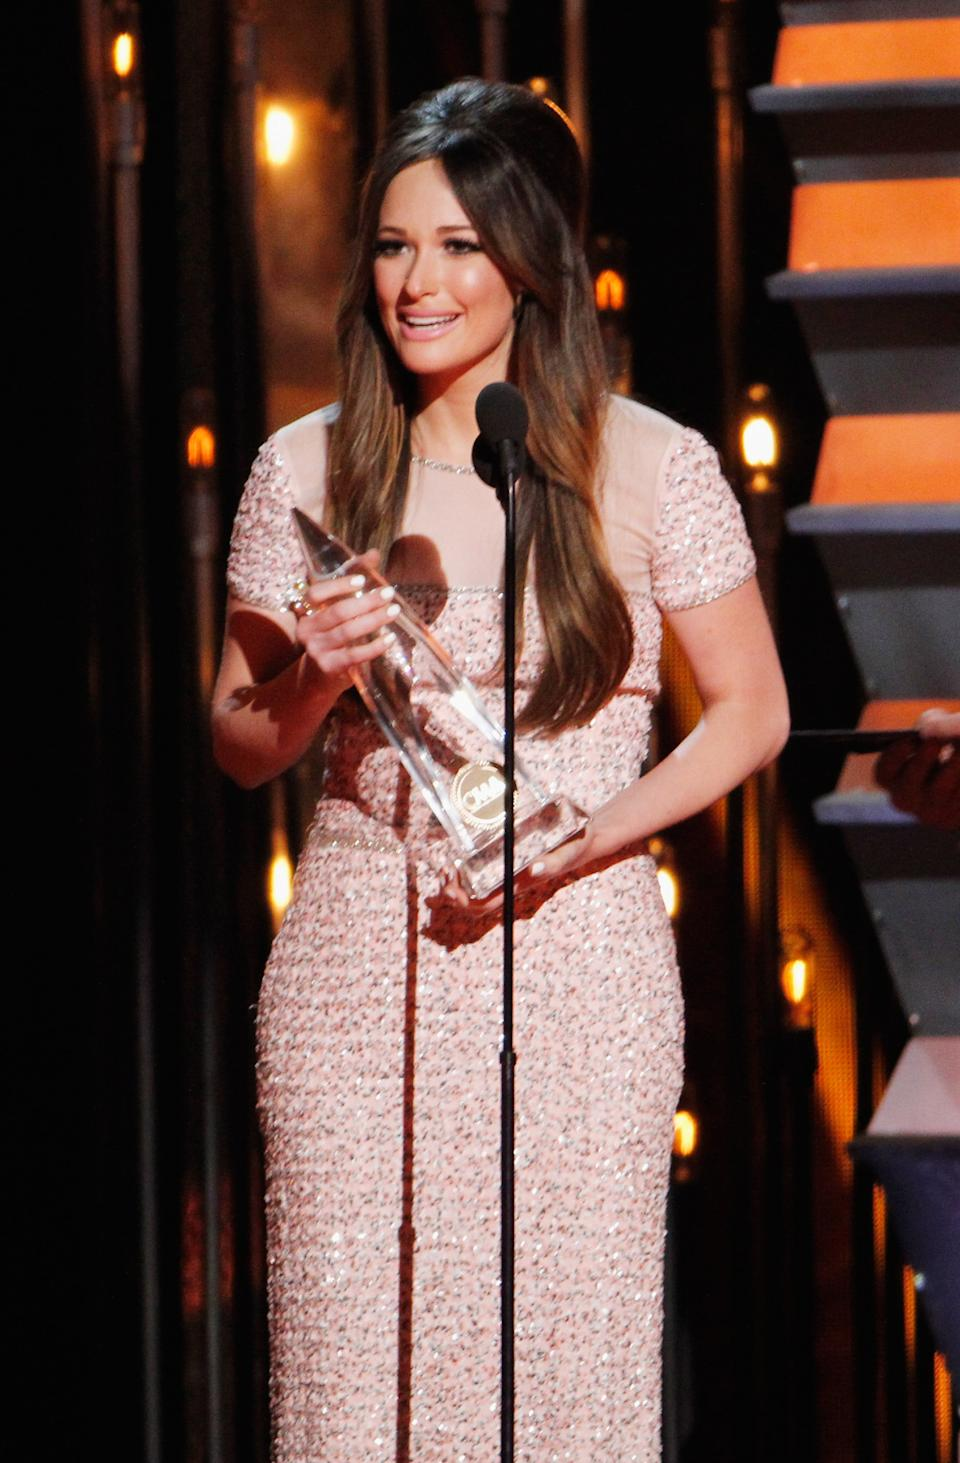 Kacey Musgraves accepts the award for Song of the Year during the 48th annual CMA awards at the Bridgestone Arena on Nov. 5, 2014 in Nashville. (Photo: Terry Wyatt/FilmMagic)